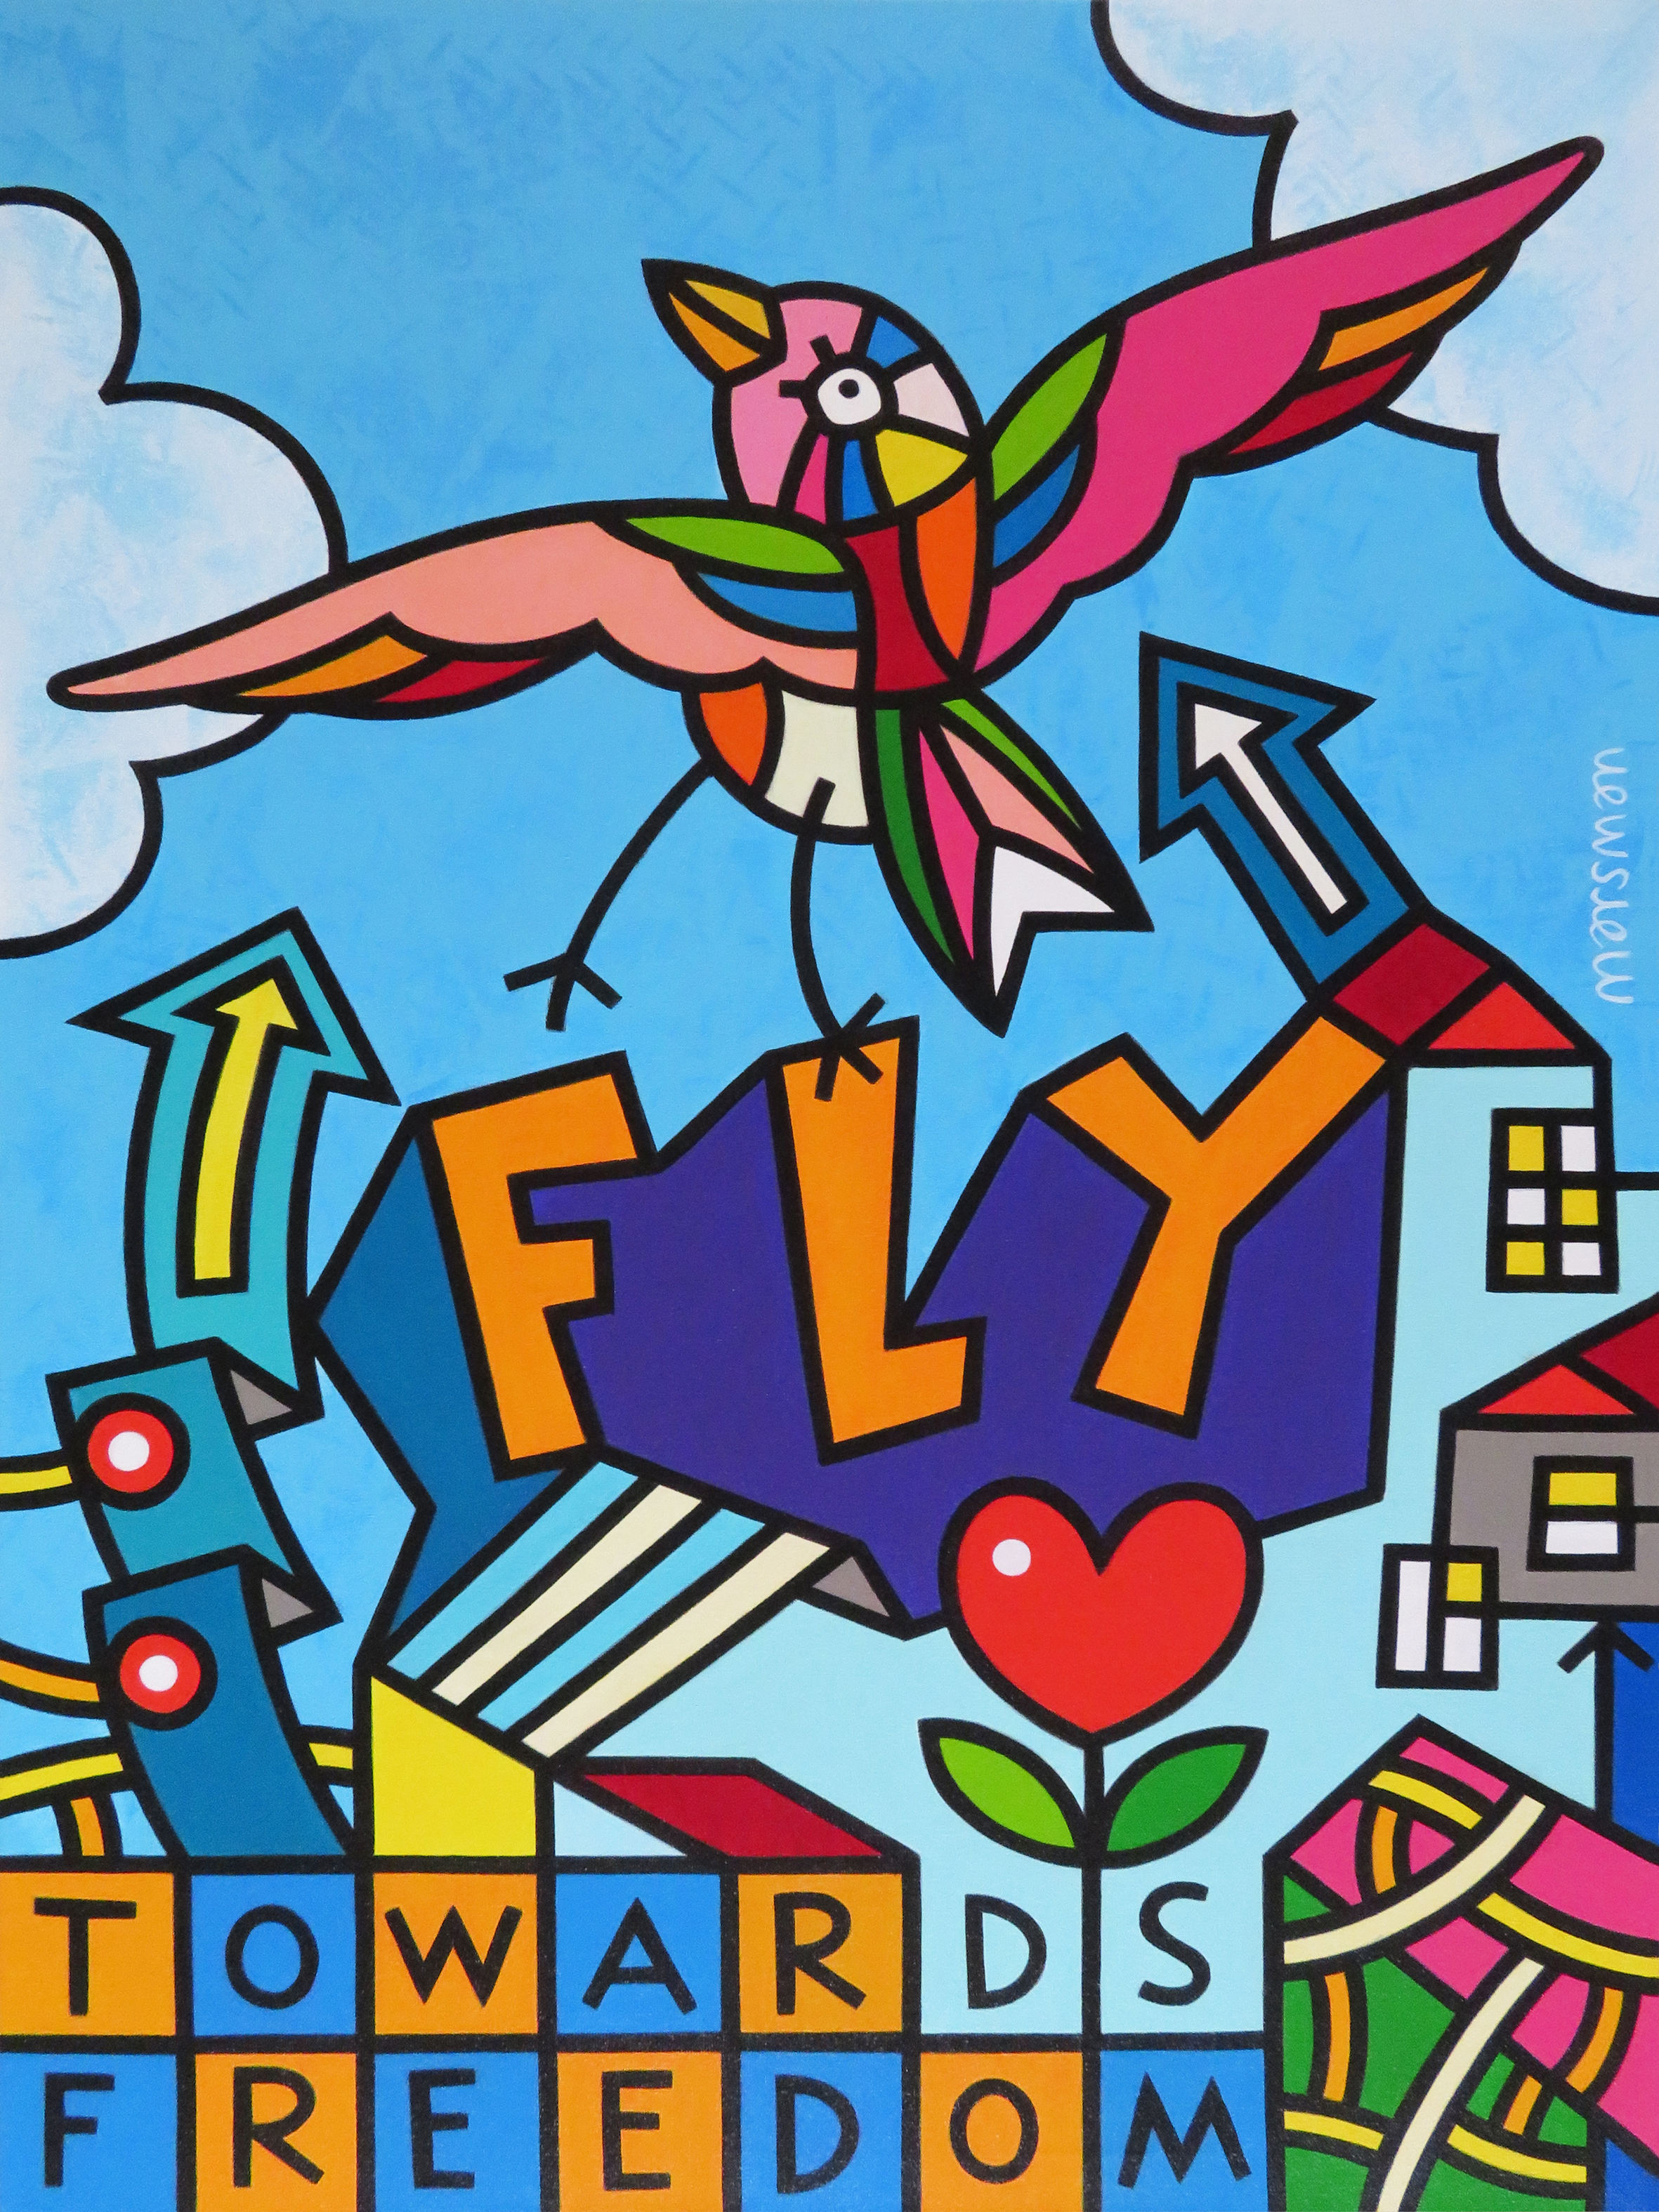 "<b>FLY TOWARDS FREEDOM (2)</b> - 60 x 80 x 3 cm - acrylic on canvas -   <a style=""color: red; text-decoration: none"" href=""mailto:jpgpmarsman@onsbrabantnet.nl"">BESTEL</a>"